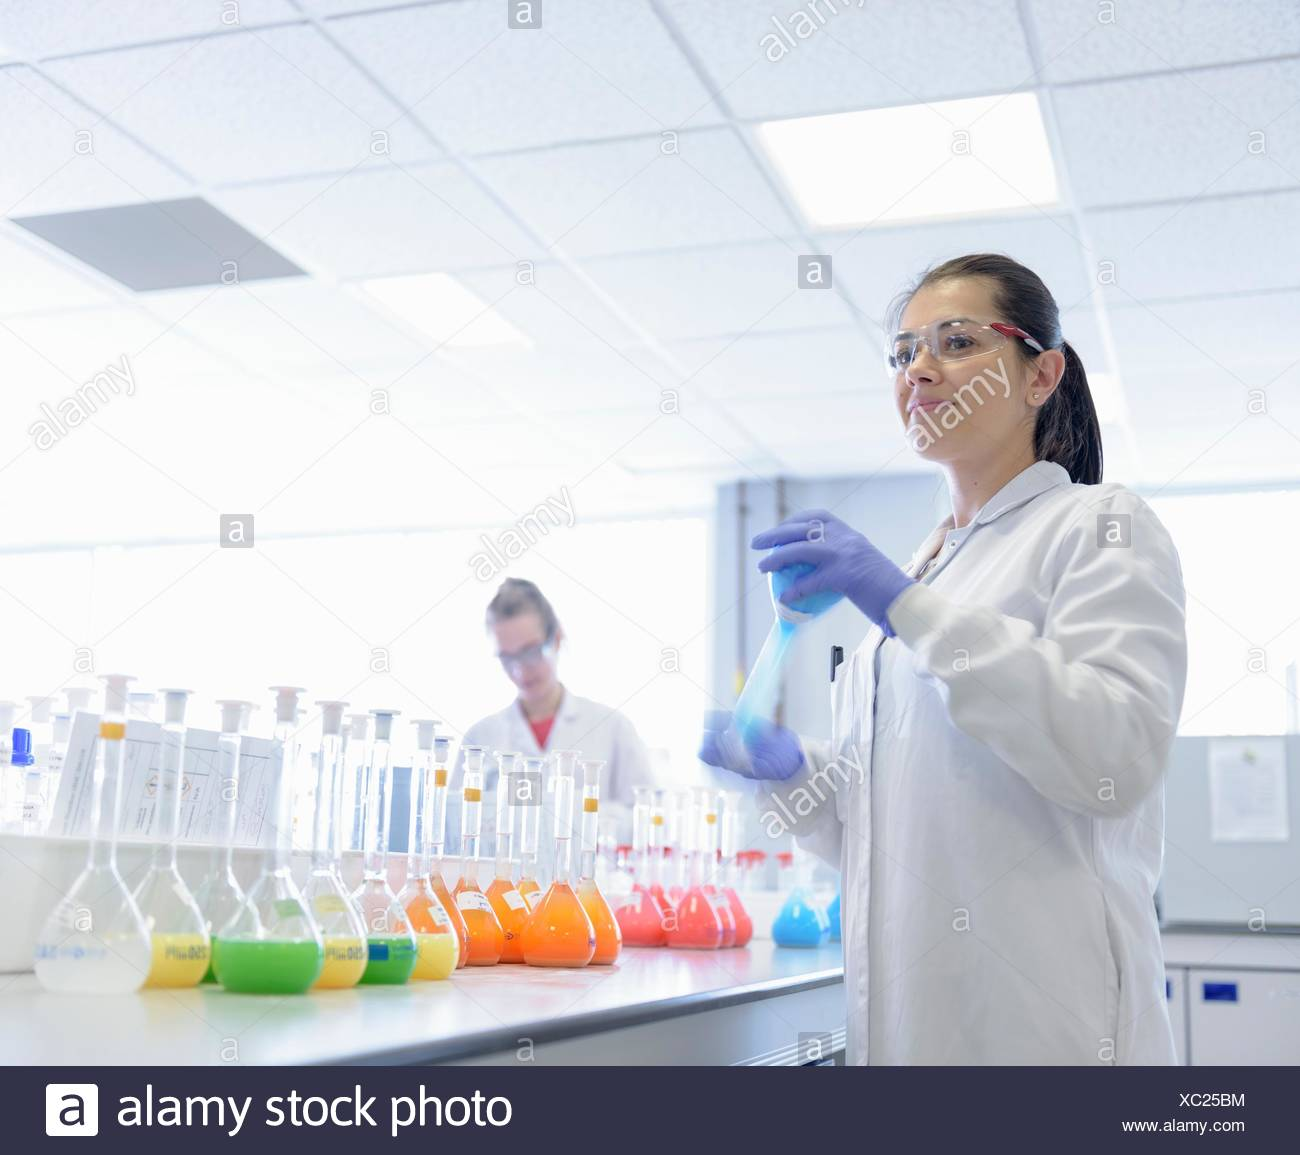 Scientist mixing food colouring in laboratory - Stock Image